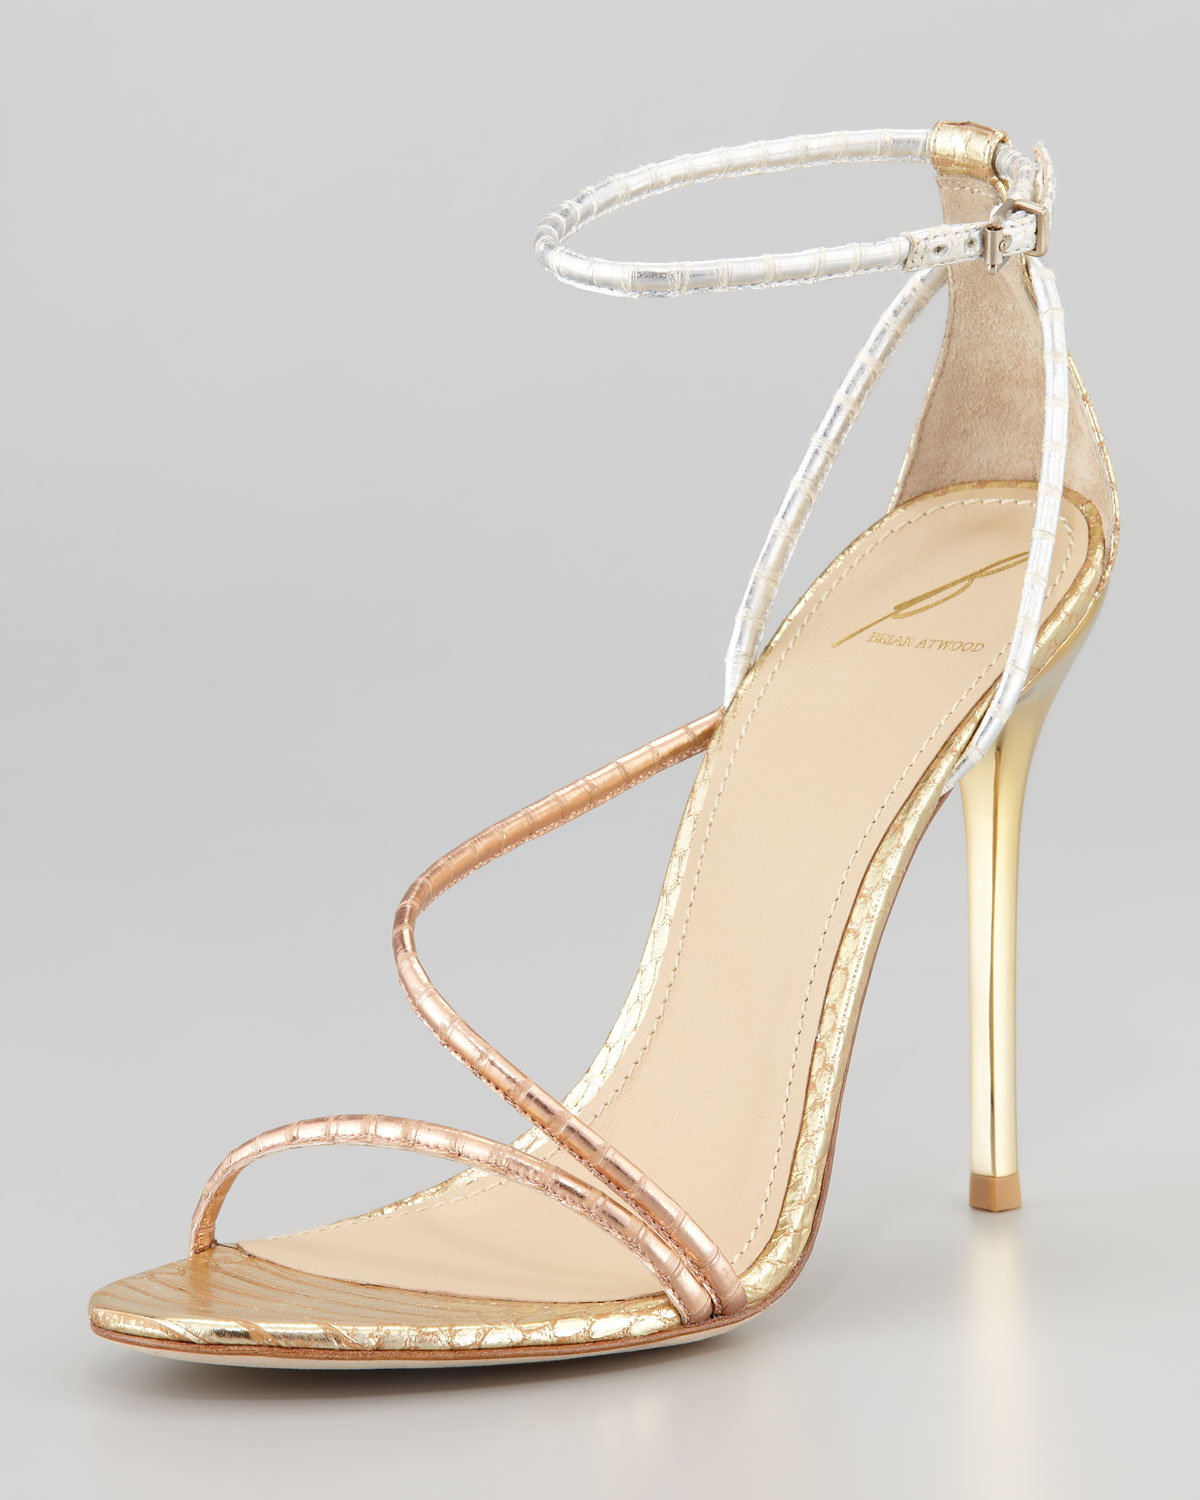 B Brian Atwood Metallic Iridescent Sandals clearance lowest price discount cheap online clearance high quality outlet 100% original websites sale online btqwmqBI